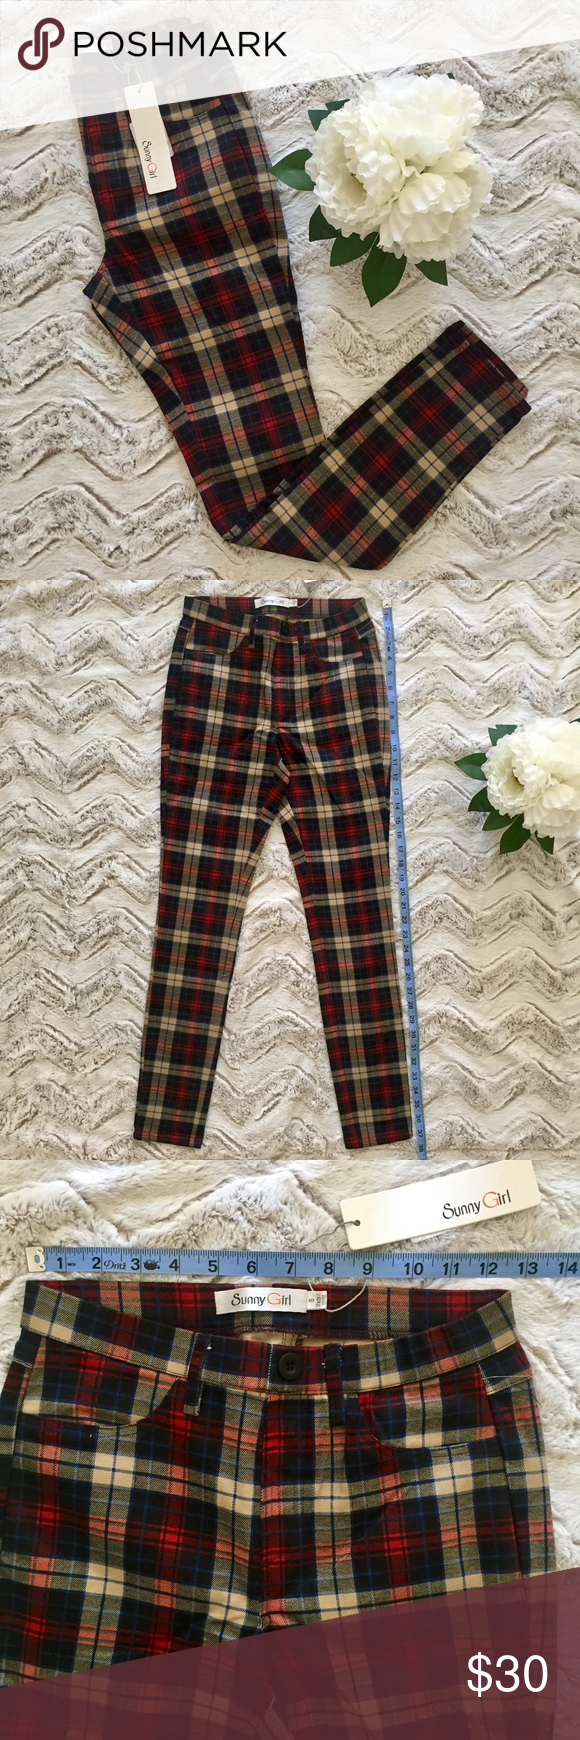 🆕STRETCH SKINNY PANTS PLAID BLACK KHAKI RED🆕 🆕NEW WITH TAGS🆕Stretch skinnies.  Plaid is black, khaki, red, and blue.  Decoratively buttoned and faux front pocket.  Cotton and elastane blend.  NEW Sunny Girl Pants Skinny